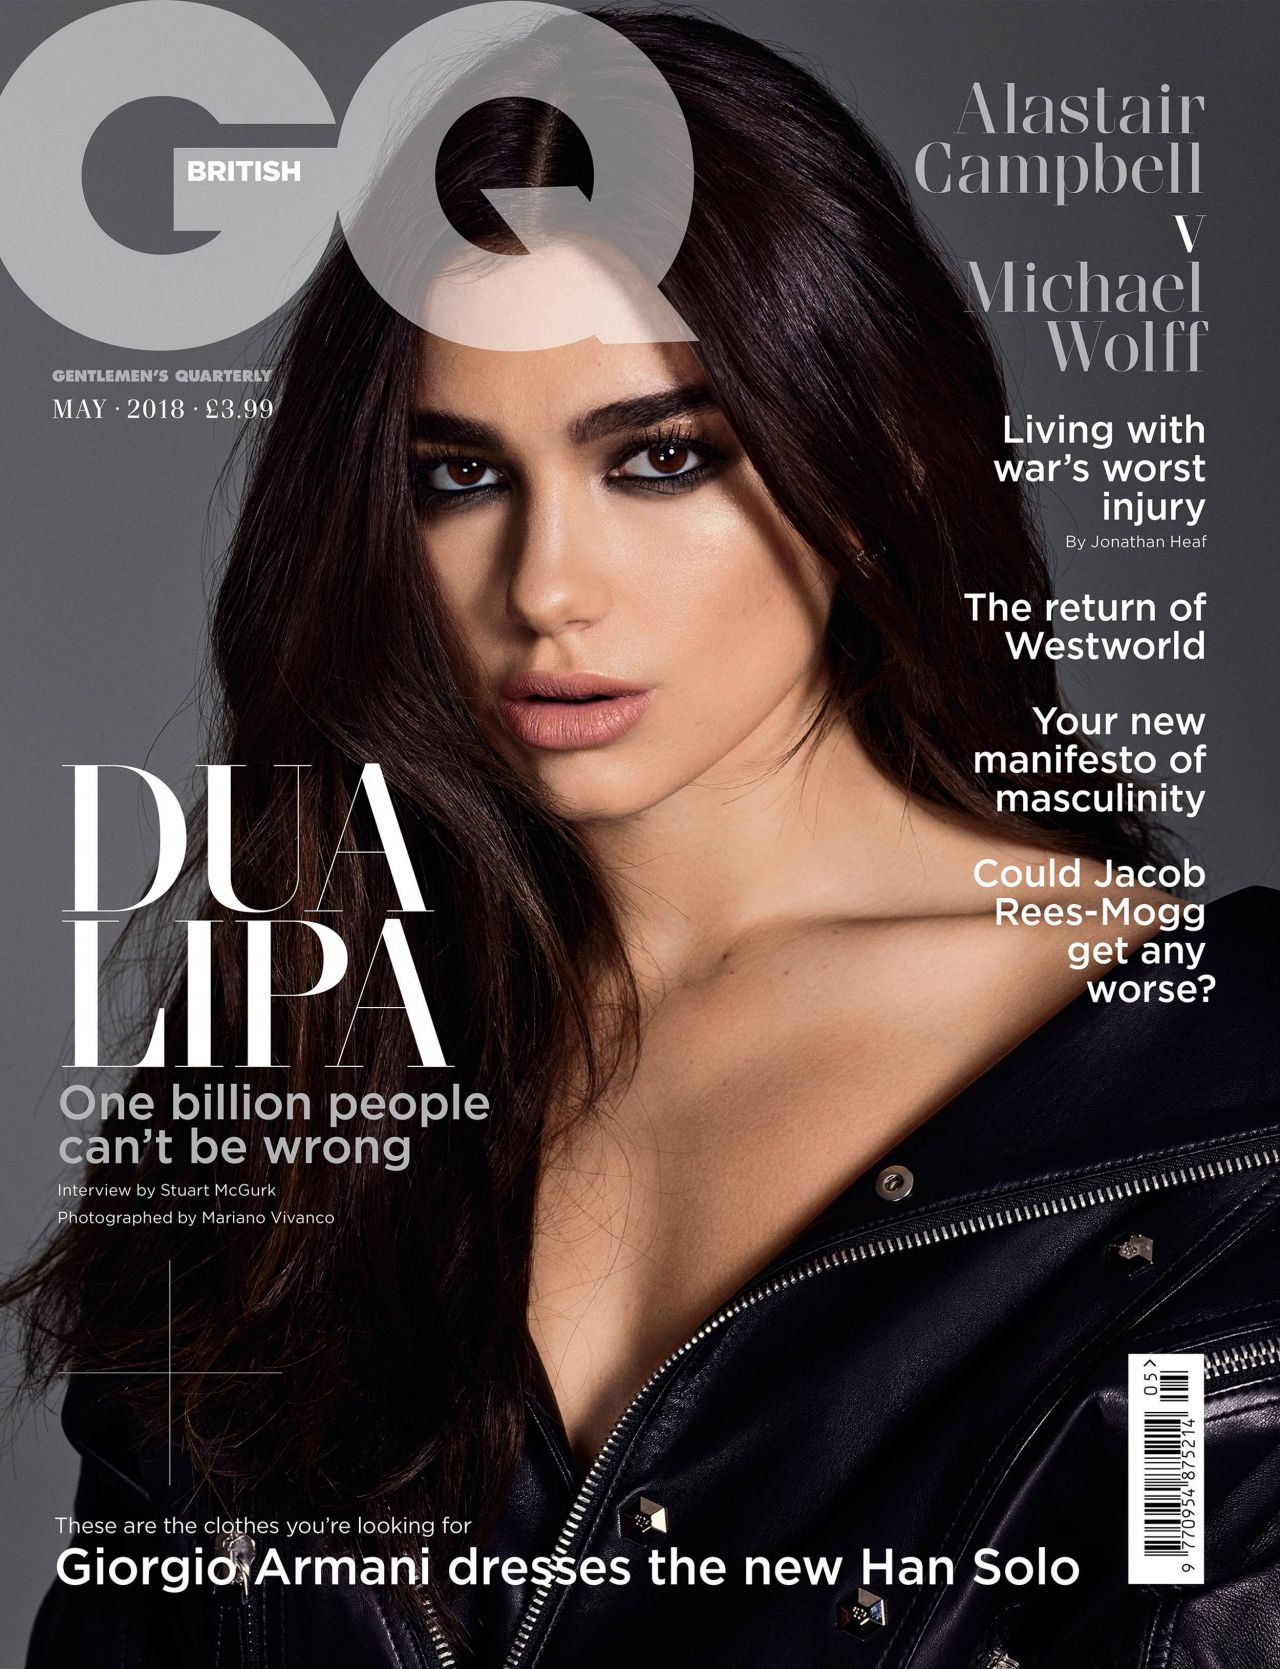 Gq Magazine The Secrets Of R Kelly: GQ Magazine UK April 2018